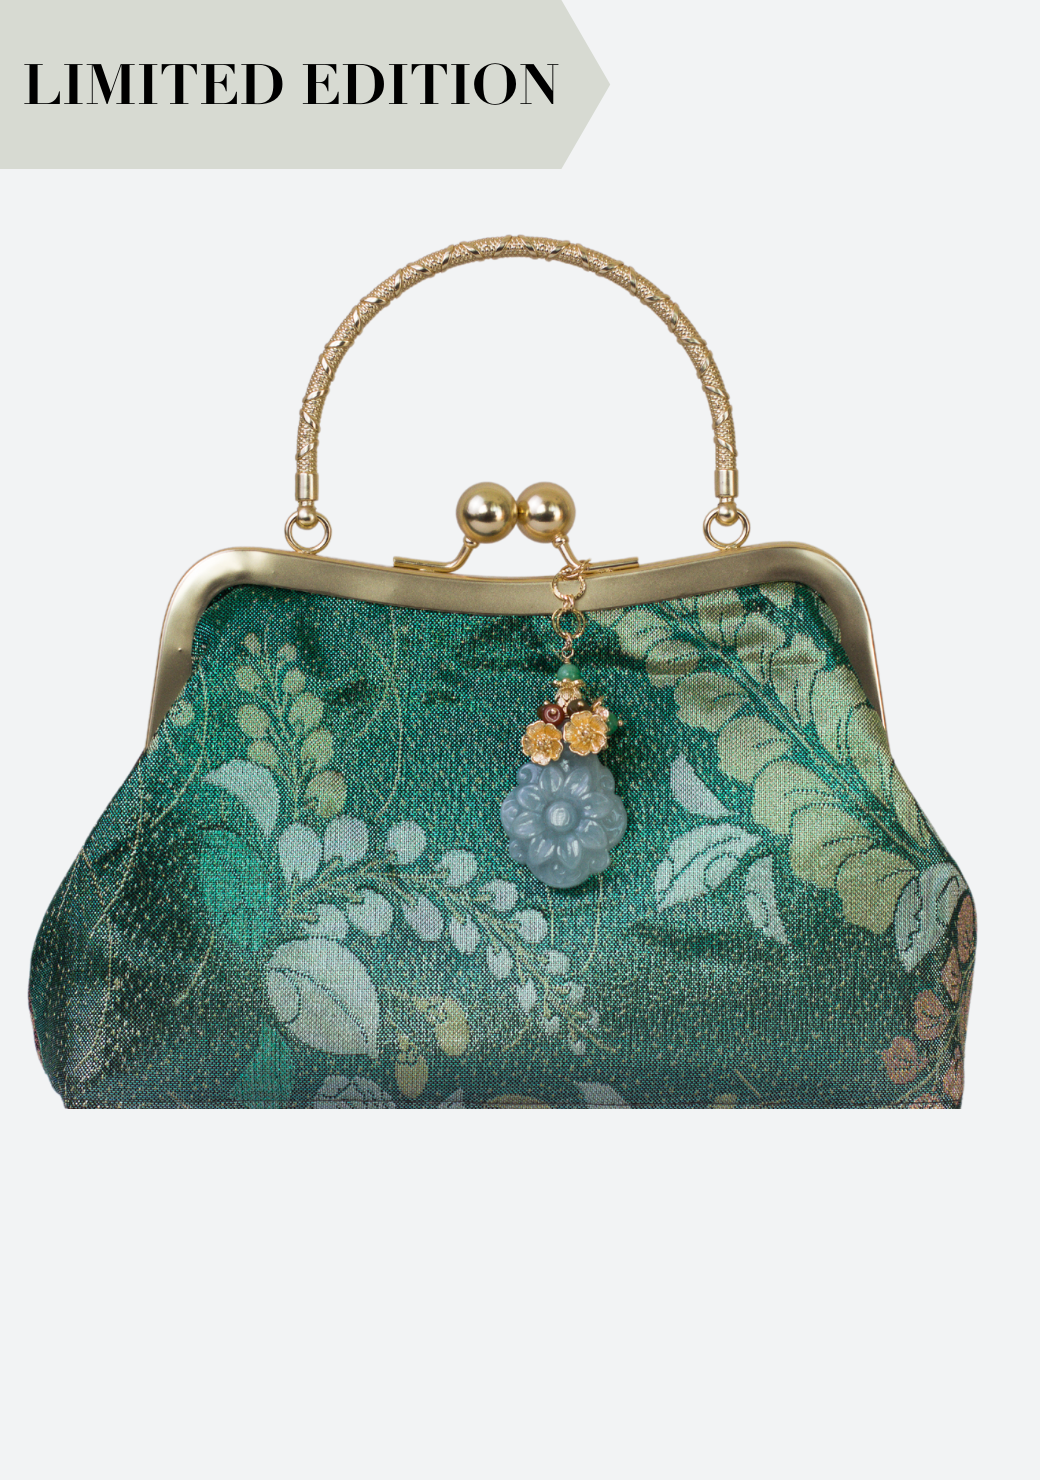 Jadeite Obi Silk Handbag in Red Green Flower